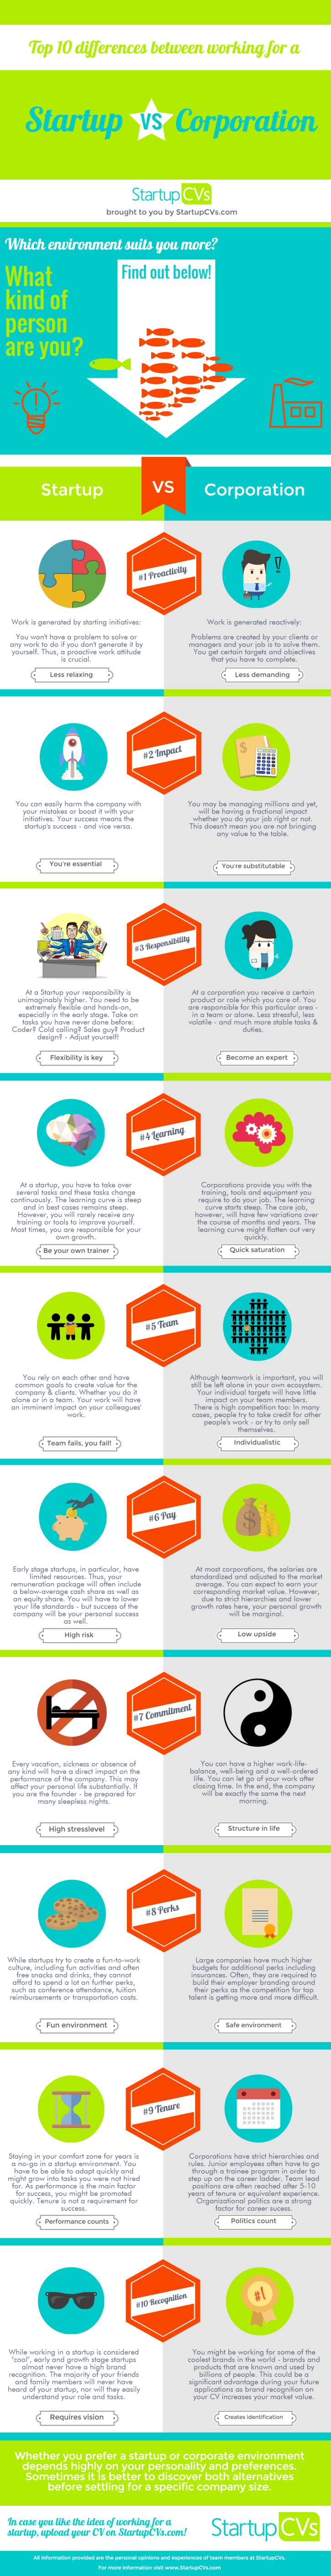 startups vs corporations infographic - StartupCVs